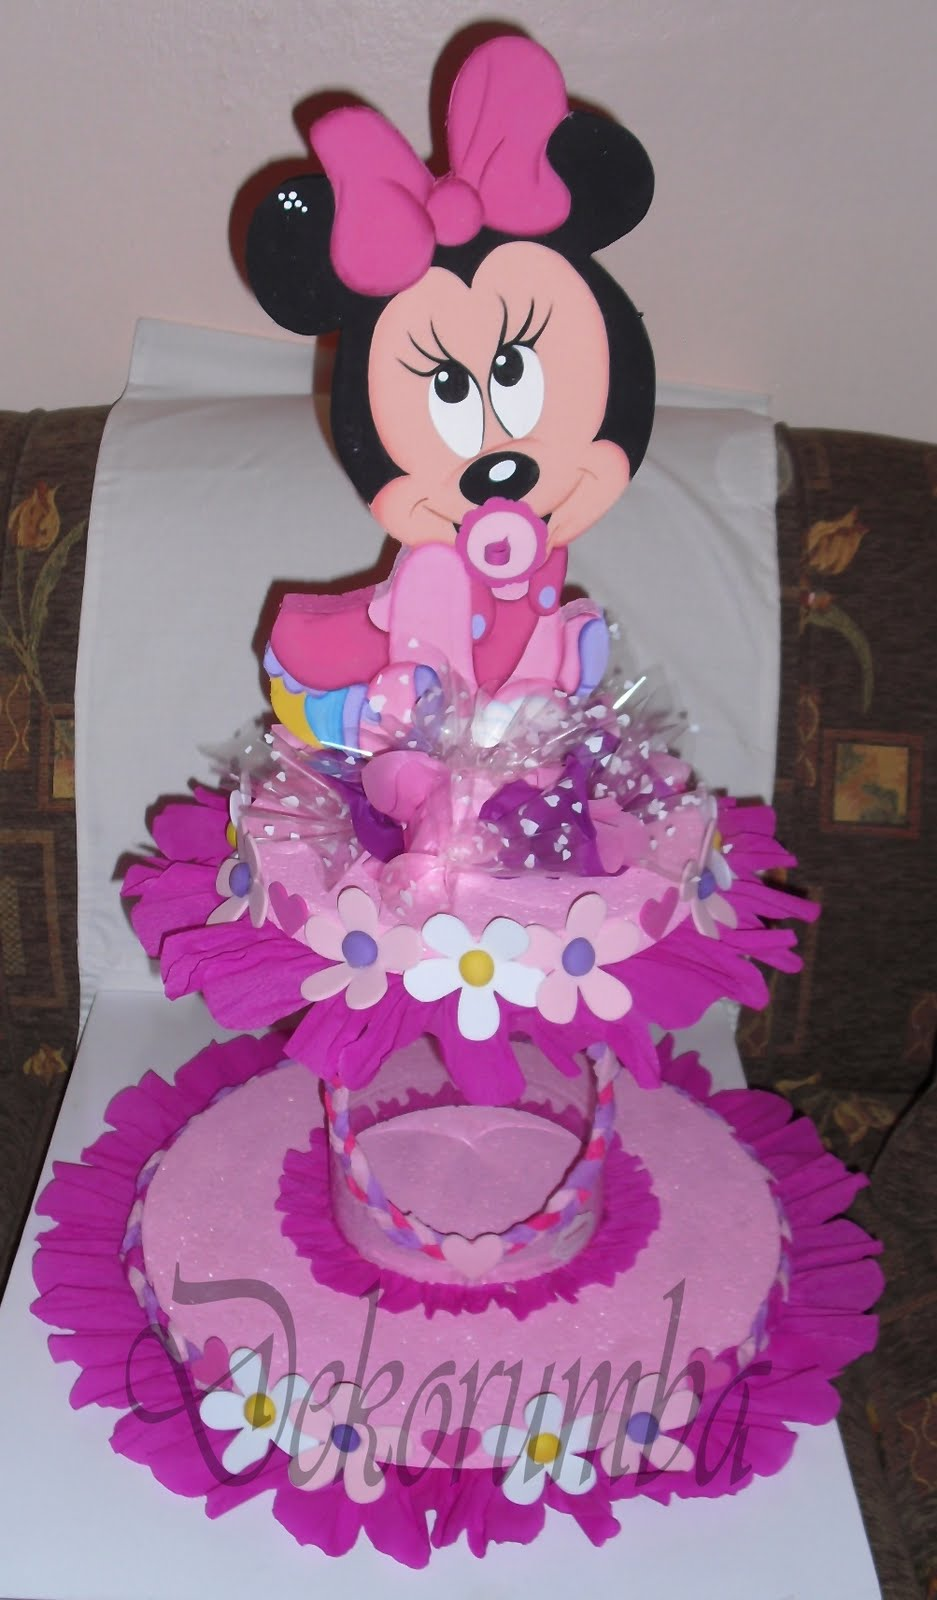 DekoRumba: Chupetero con dispensador - Minnie bebe